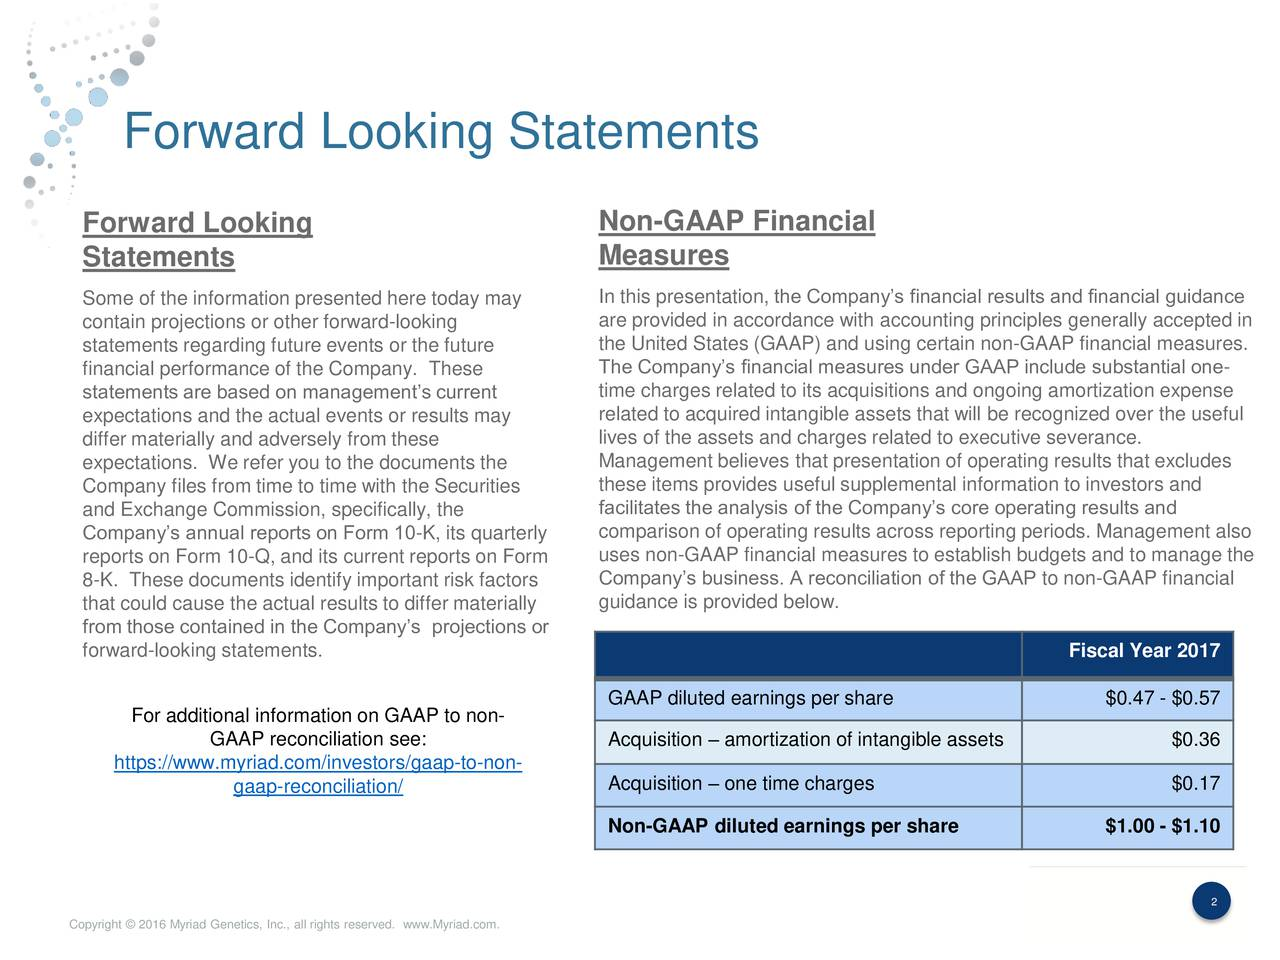 Forward Looking Non-GAAP Financial Statements Measures Some of the information presented here today may In this presentation, the Companys financial results and financial guidance contain projections or other forward-looking are provided in accordance with accounting principles generally accepted in statements regarding future events or the future the United States (GAAP) and using certain non-GAAP financial measures. financial performance of the Company. These The Companys financial measures under GAAP include substantial one- time charges related to its acquisitions and ongoing amortization expense statements are based on managements current expectations and the actual events or results may related to acquired intangible assets that will be recognized over the useful differ materially and adversely from these lives of the assets and charges related to executive severance. expectations. We refer you to the documents the Management believes that presentation of operating results that excludes Company files from time to time with the Securities these items provides useful supplemental information to investors and and Exchange Commission, specifically, the facilitates the analysis of the Companys core operating results and Companys annual reports on Form 10-K, its quarterly comparison of operating results across reporting periods. Management also uses non-GAAP financial measures to establish budgets and to manage the reports on Form 10-Q, and its current reports on Form 8-K. These documents identify important risk factors Companys business. A reconciliation of the GAAP to non-GAAP financial that could cause the actual results to differ materiallyguidance is provided below. from those contained in the Companys projections or forward-looking statements. Fiscal Year 2017 GAAP diluted earnings per share $0.47 - $0.57 For additional information on GAAP to non- GAAP reconciliation see: Acquisition  amortization of intangible assets $0.36 https://www.myriad.com/investors/gaa